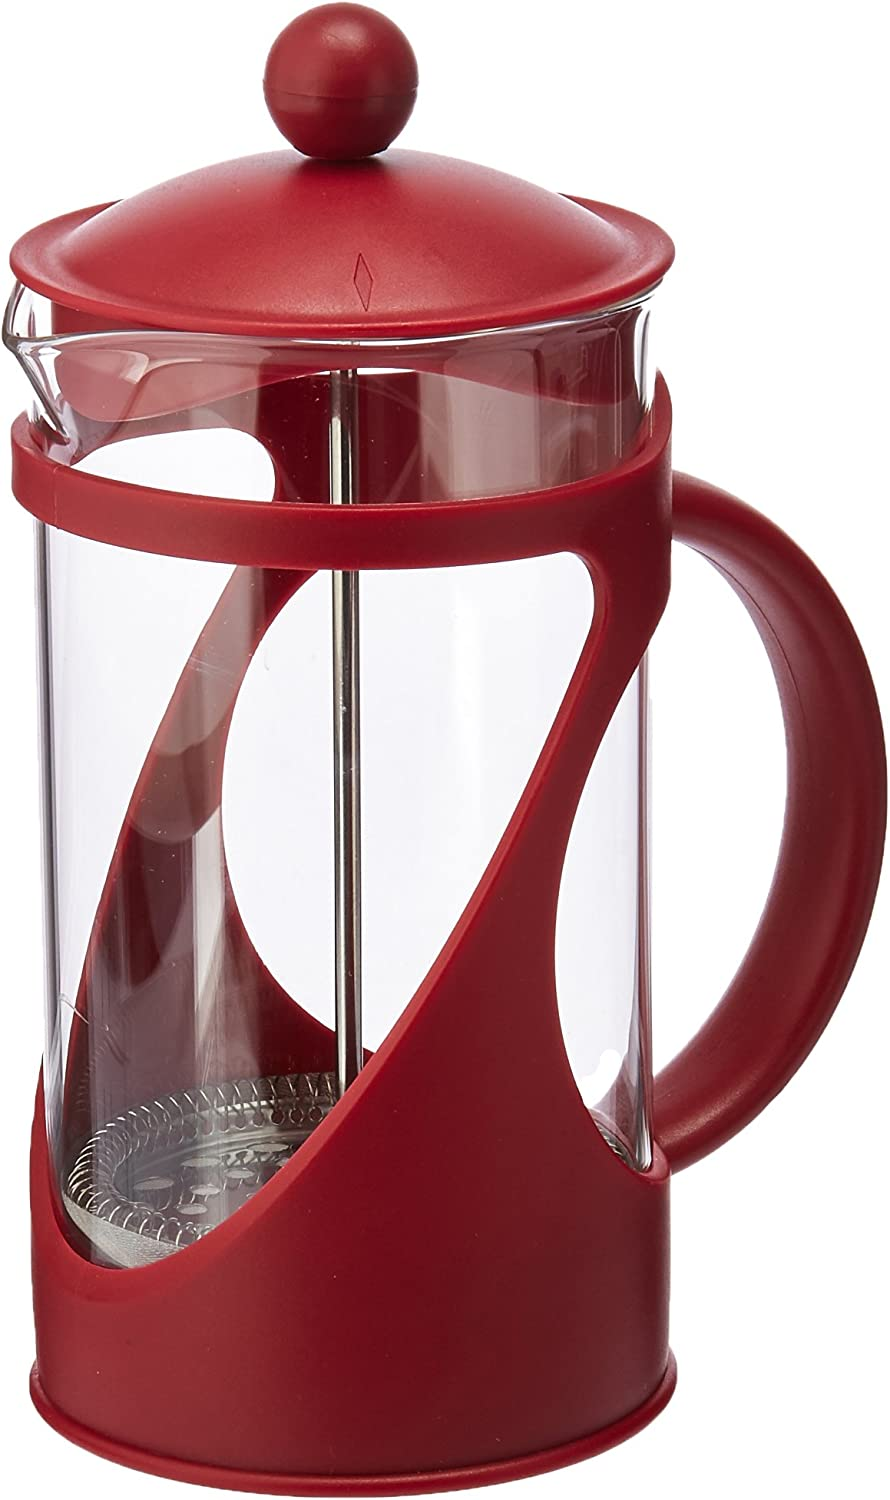 Primula TCRE-2908 Today Pierre Frecnh Coffee Press 8cup, 8 Cup, Red